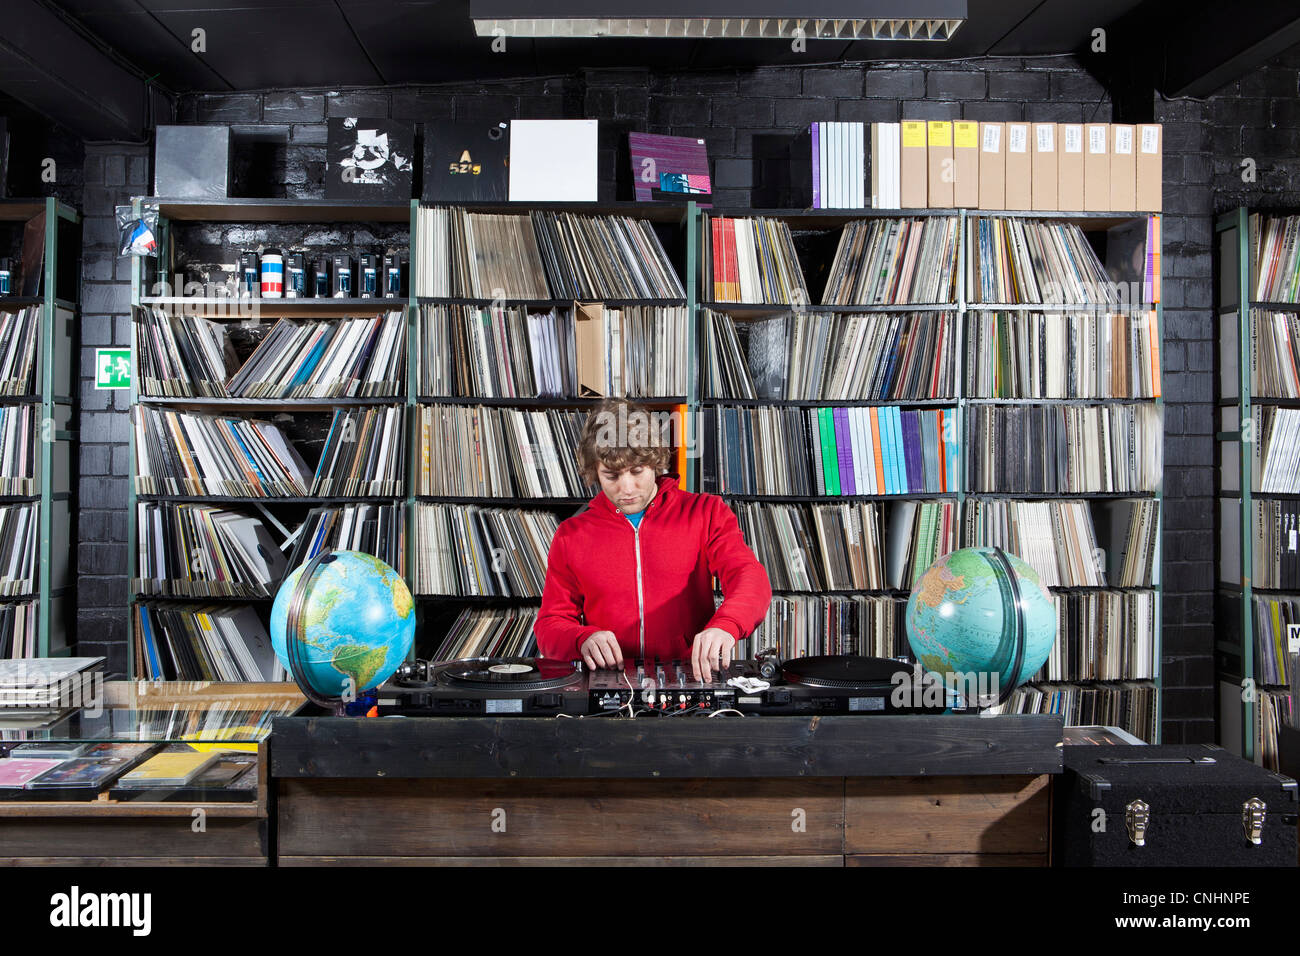 A young man using a sound mixer and DJ decks at a record store - Stock Image